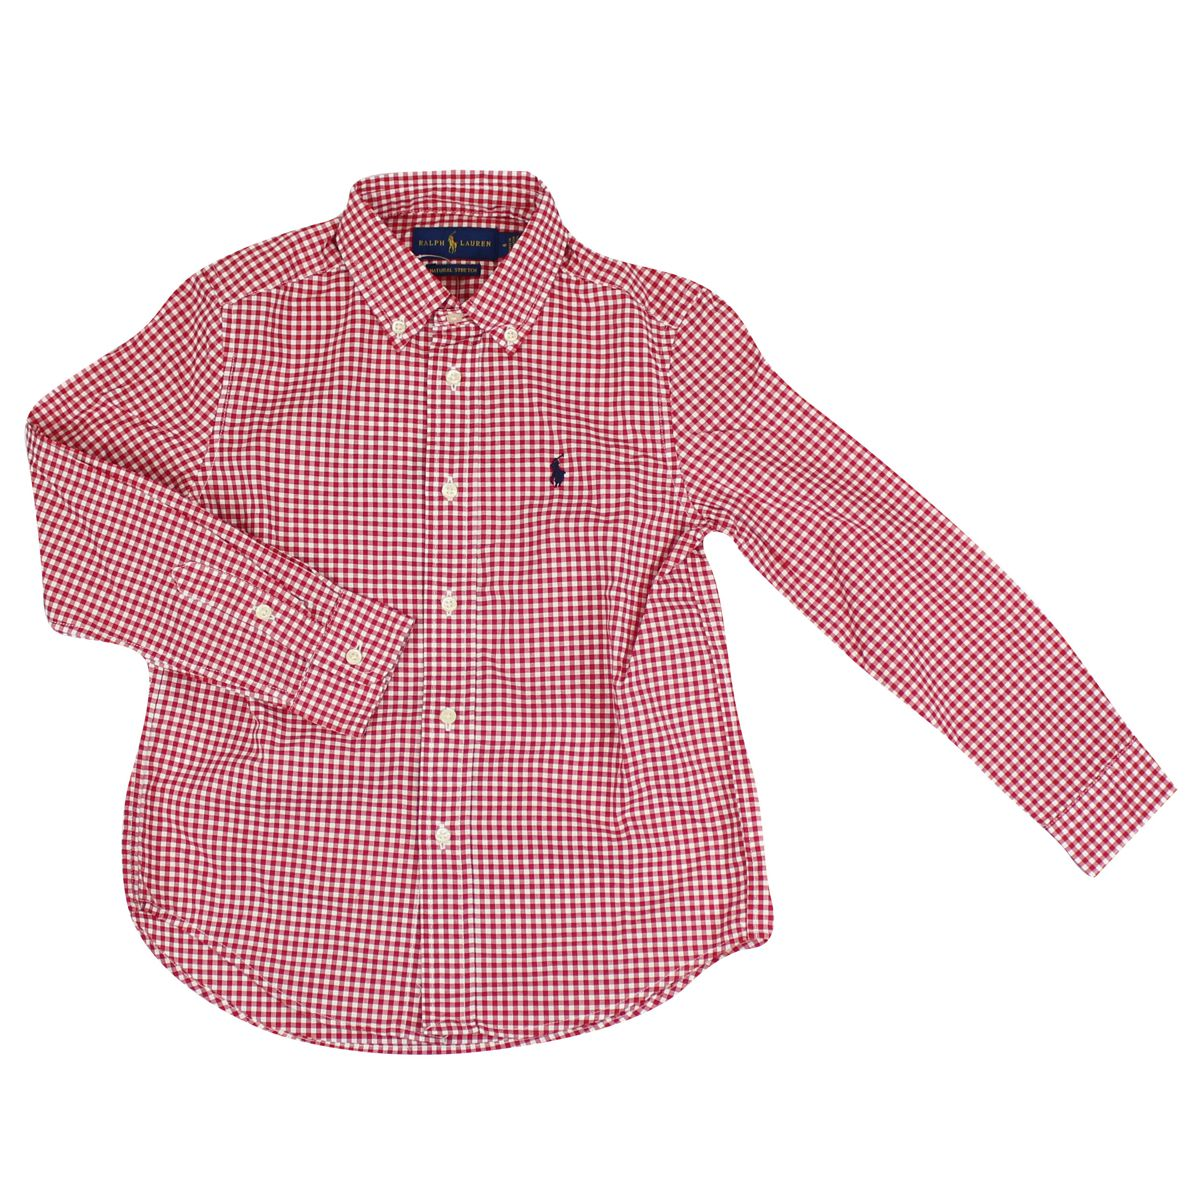 Camicia micro quardi botton down Bianco/rosso Polo Ralph Lauren